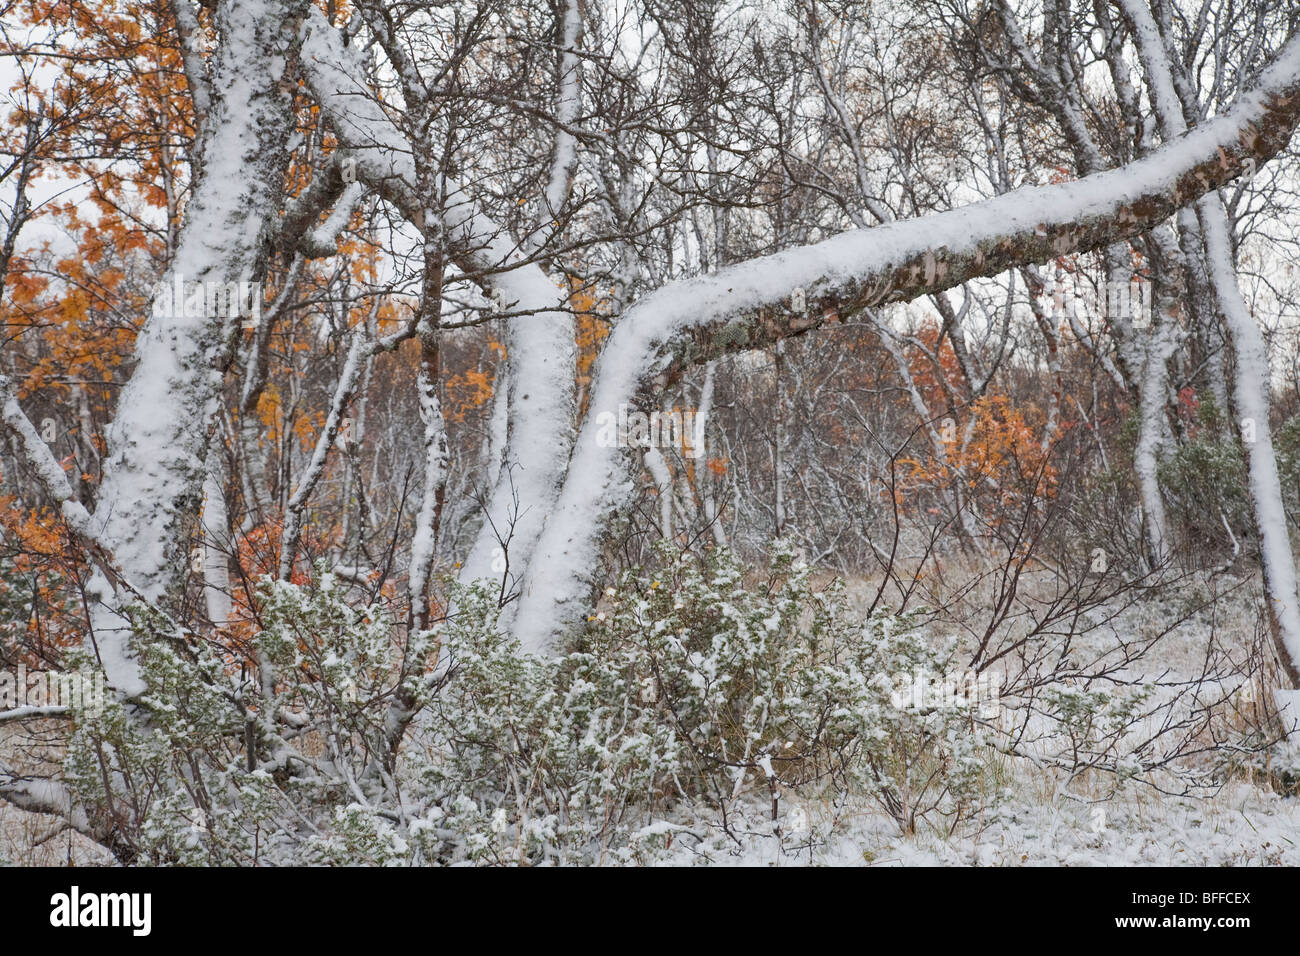 birch forest in autumn with first snow and view over snowy forest - Stock Image